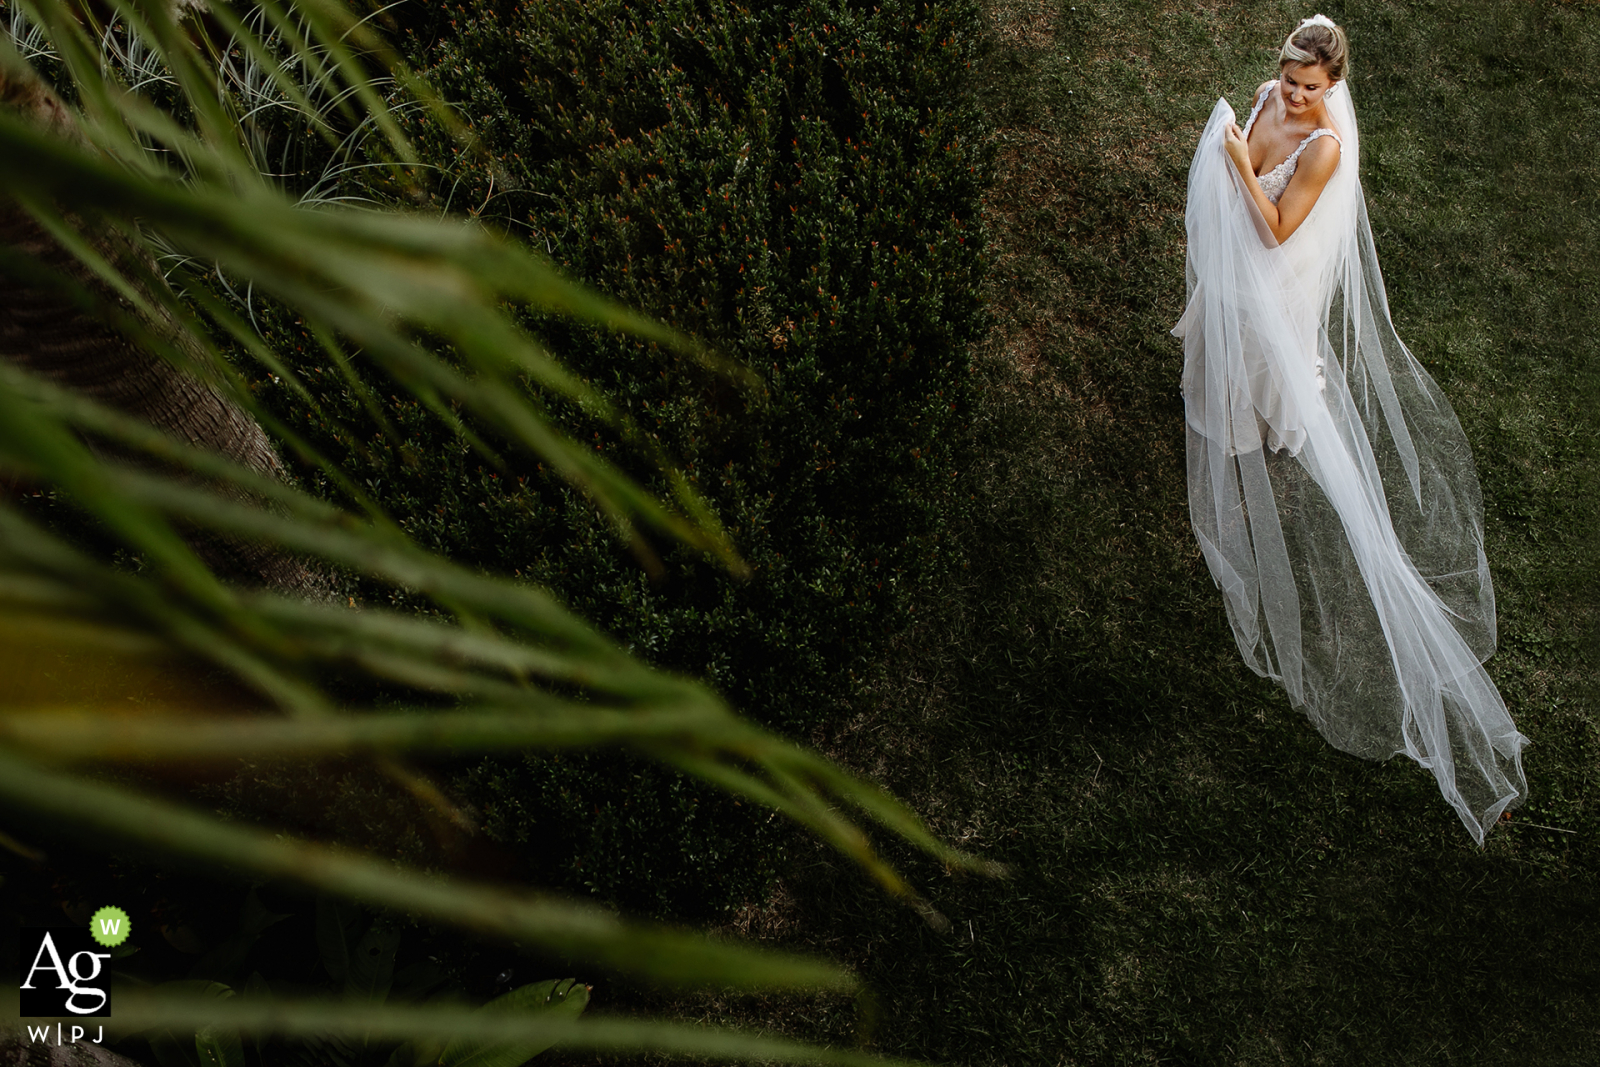 Casa da Noiva fine art wedding portrait image from the House of the Brideas she is spinning her veil on the lawn